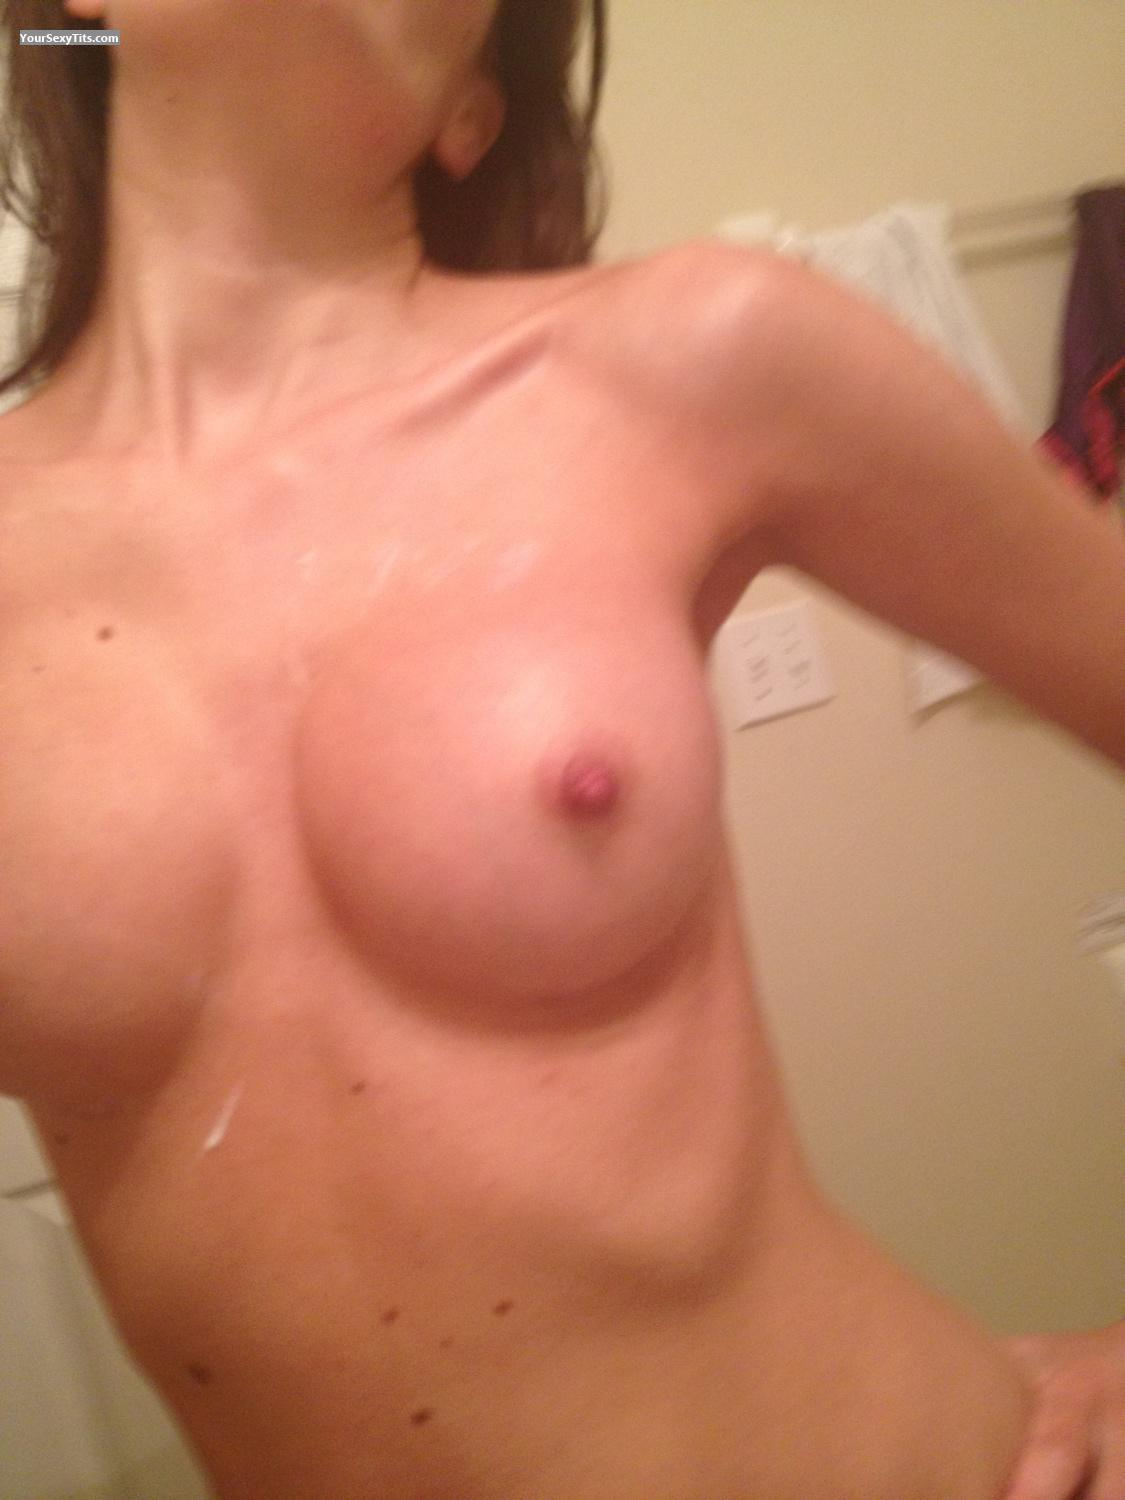 Tit Flash: Medium Tits By IPhone - Juicy Nips from United States